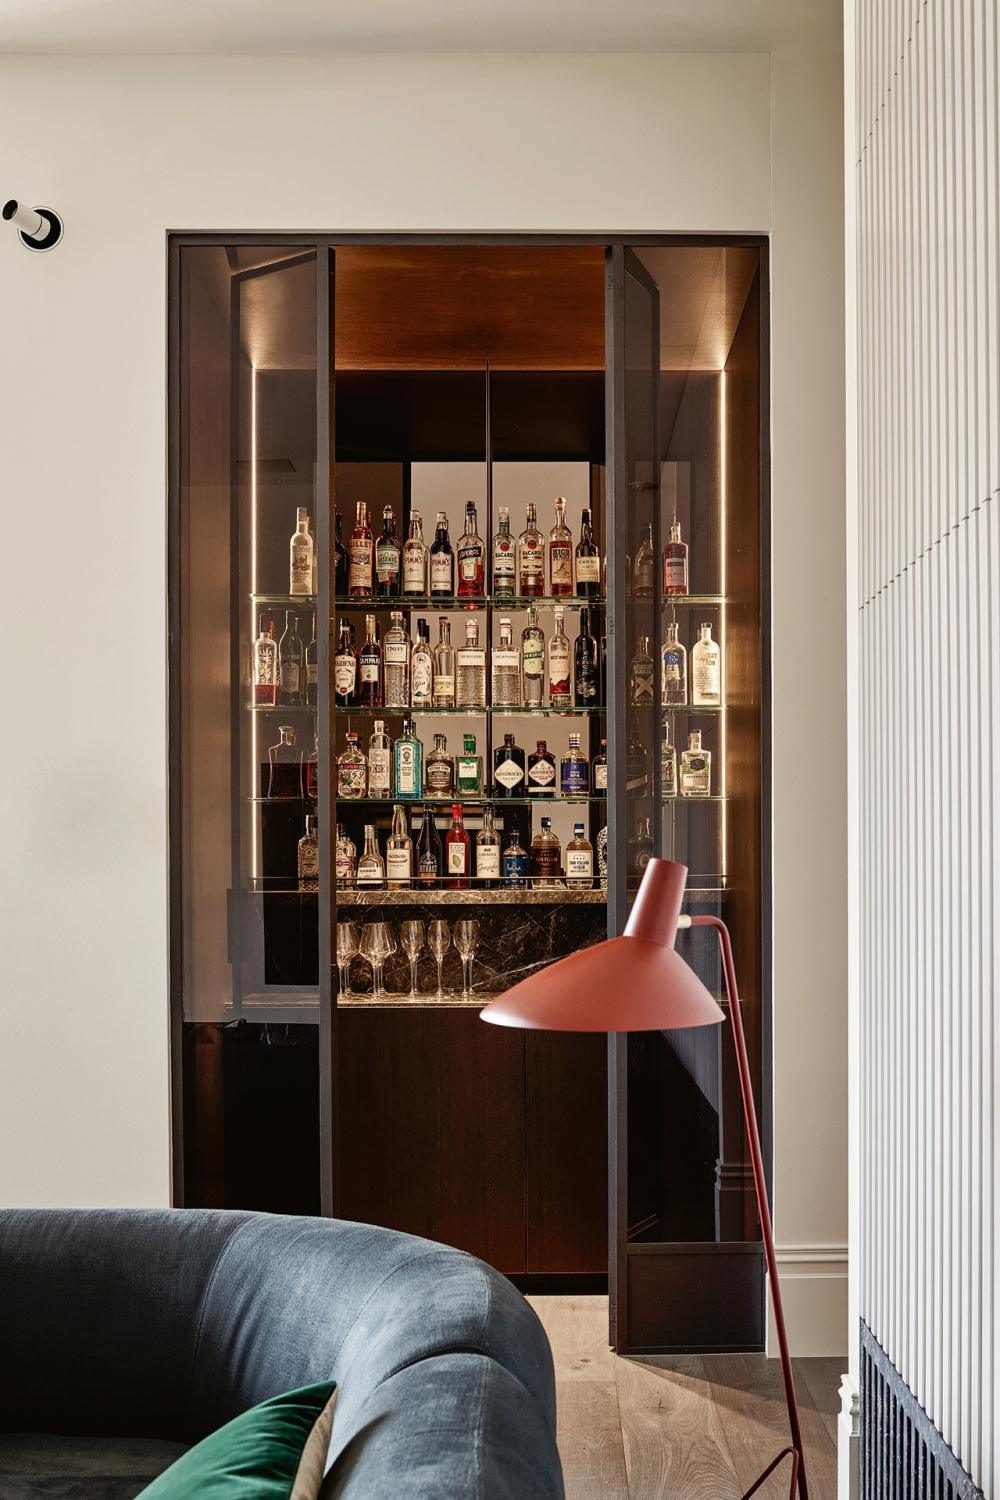 House tour: an elegant heritage Melbourne home restored with a moody colour palette-7.jpg